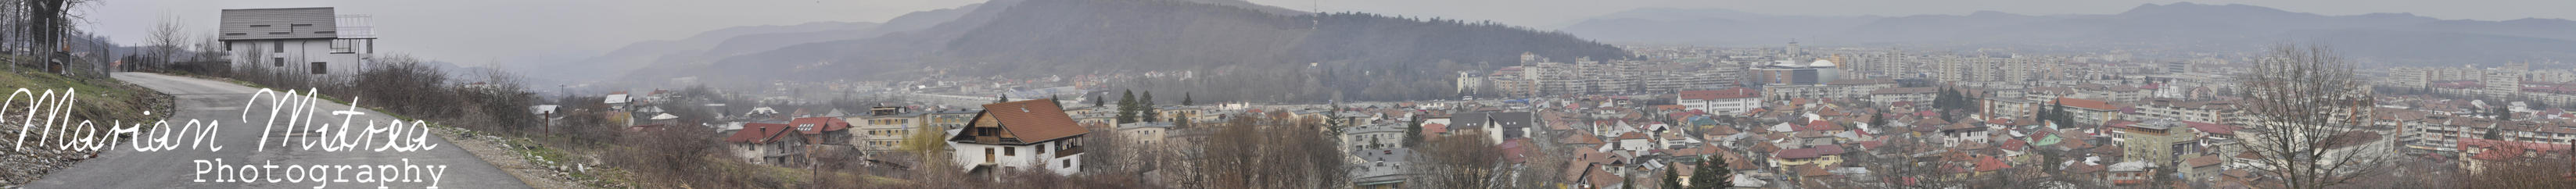 Rm Valcea Panorama by mmariang